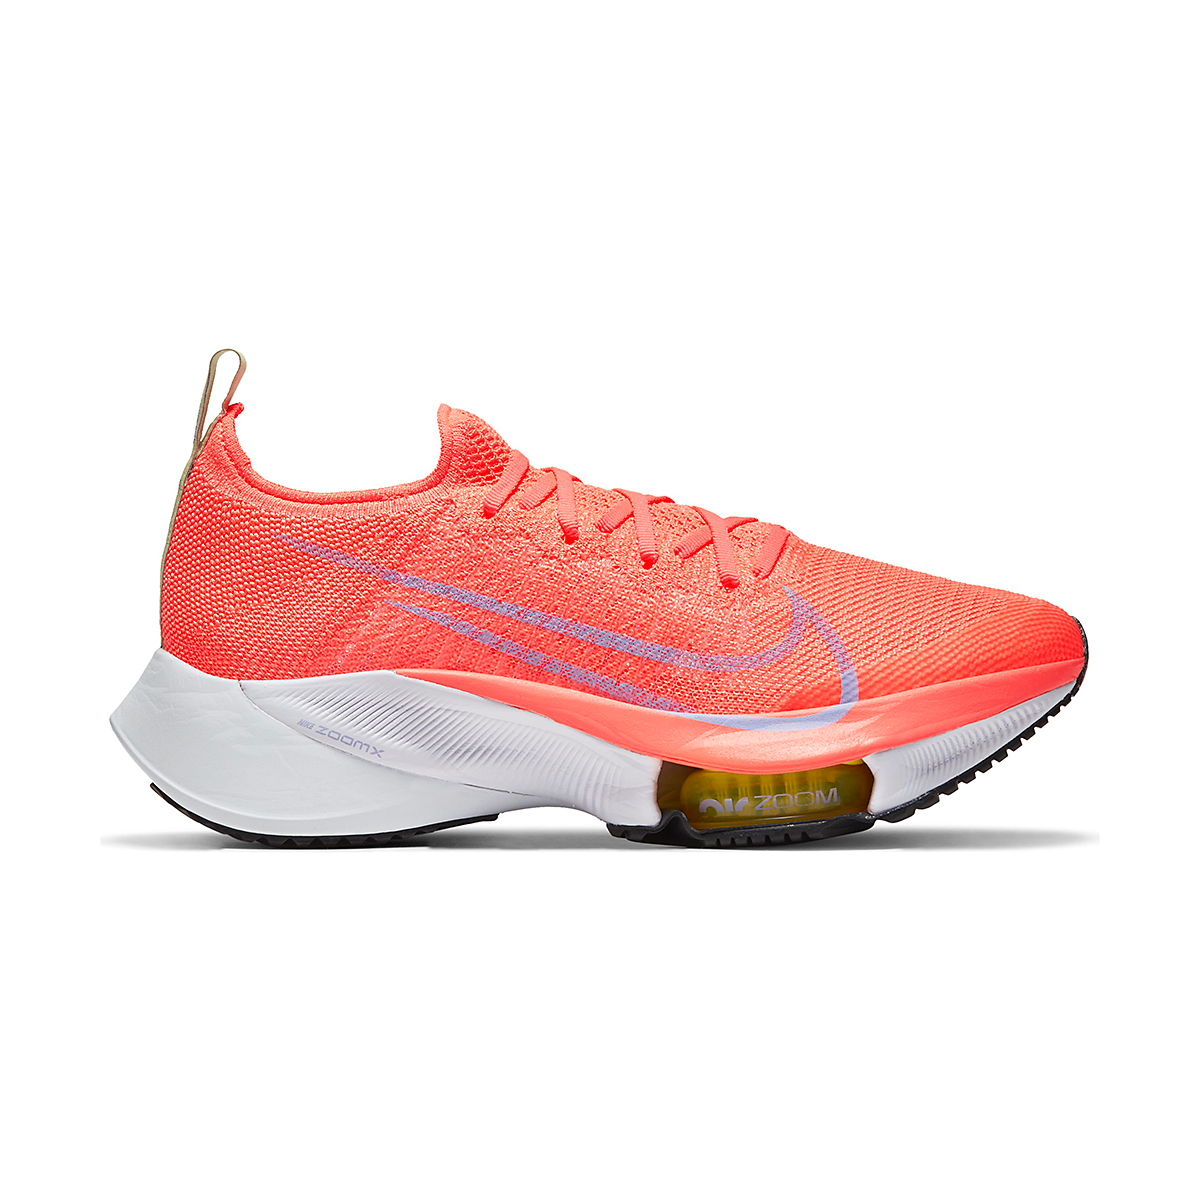 Women's Nike Air Zoom Tempo NEXT% Running Shoe - Color: Bright Mango/Purple Pulse-White - Size: 5.5 - Width: Regular, Bright Mango/Purple Pulse-White, large, image 1